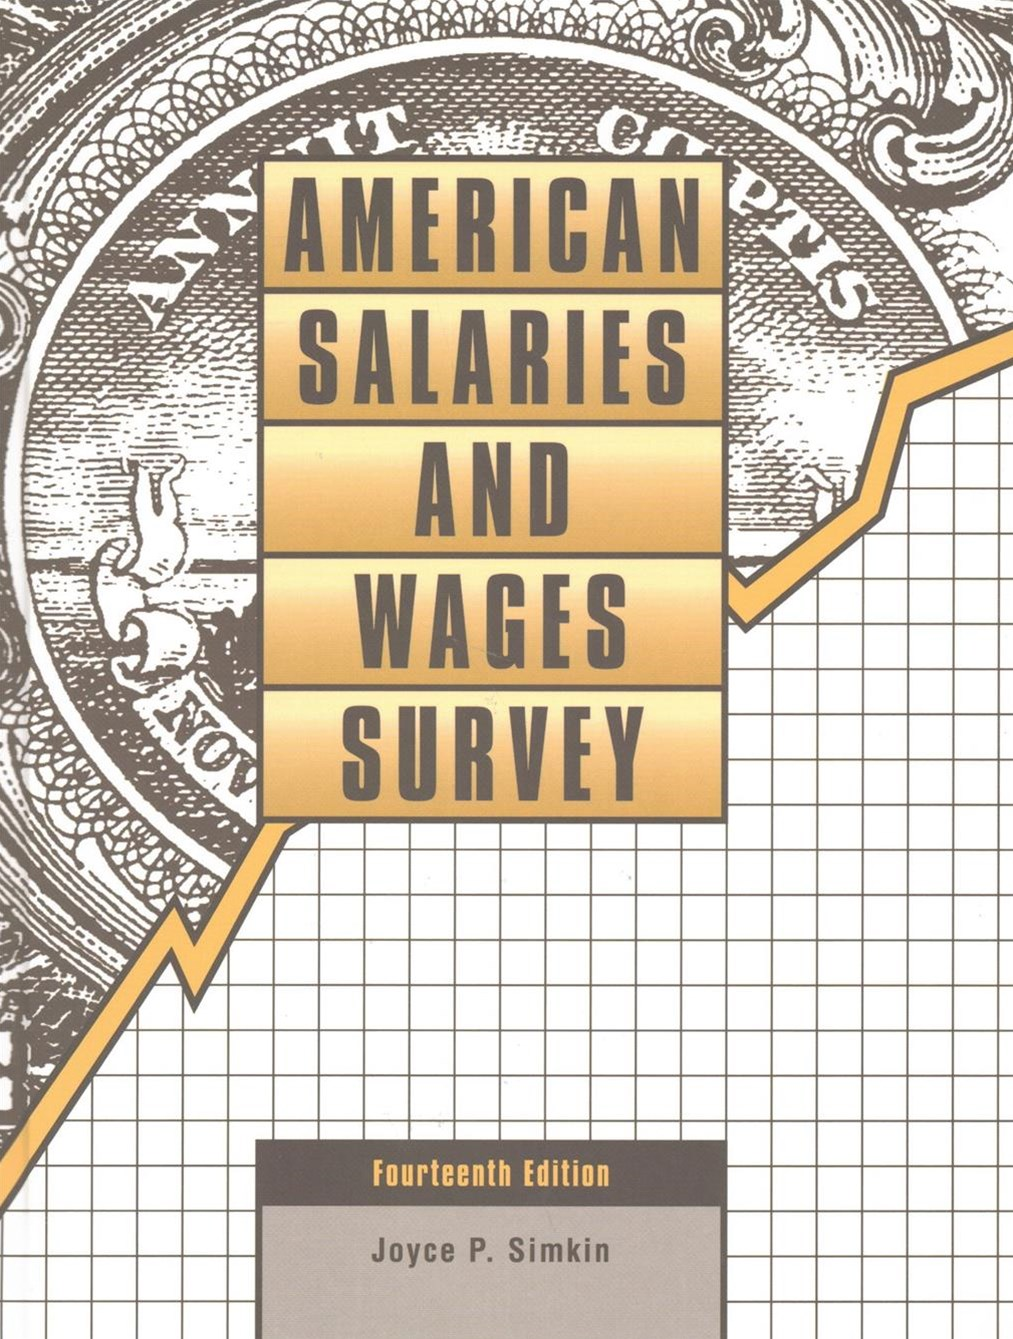 American Salaries and Wages Survey